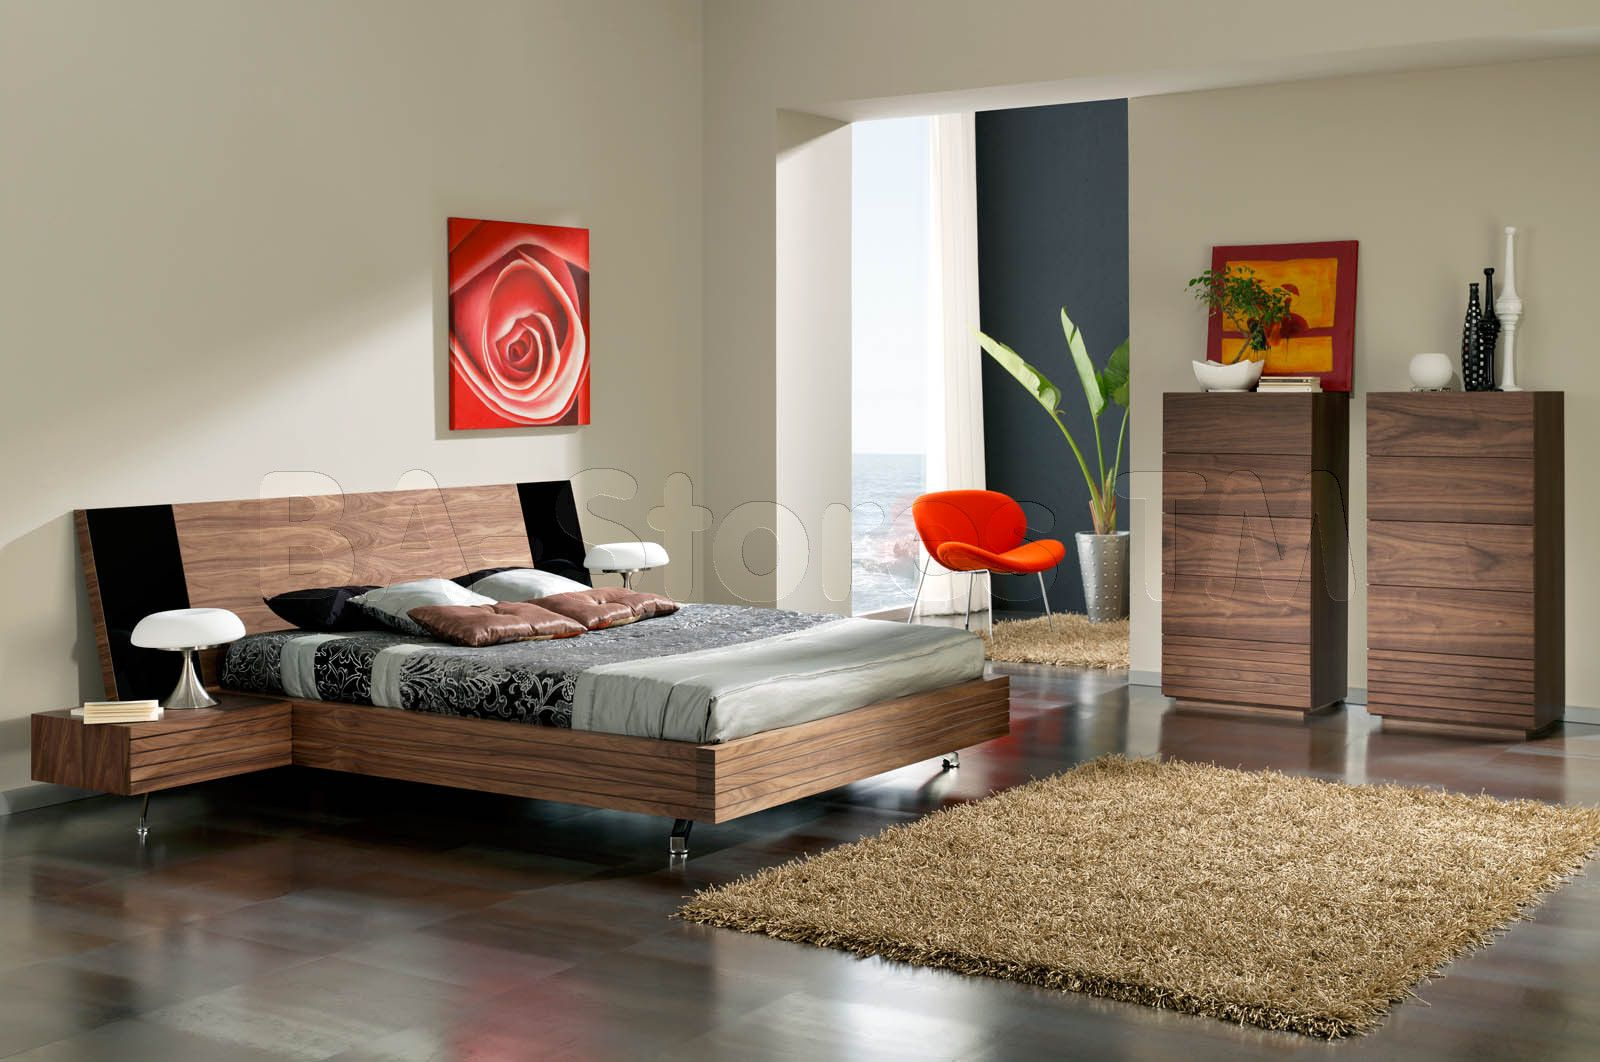 ikea bedroom sets | Ikea Bedroom Sets 1600x1062 Phoenix Youth ...